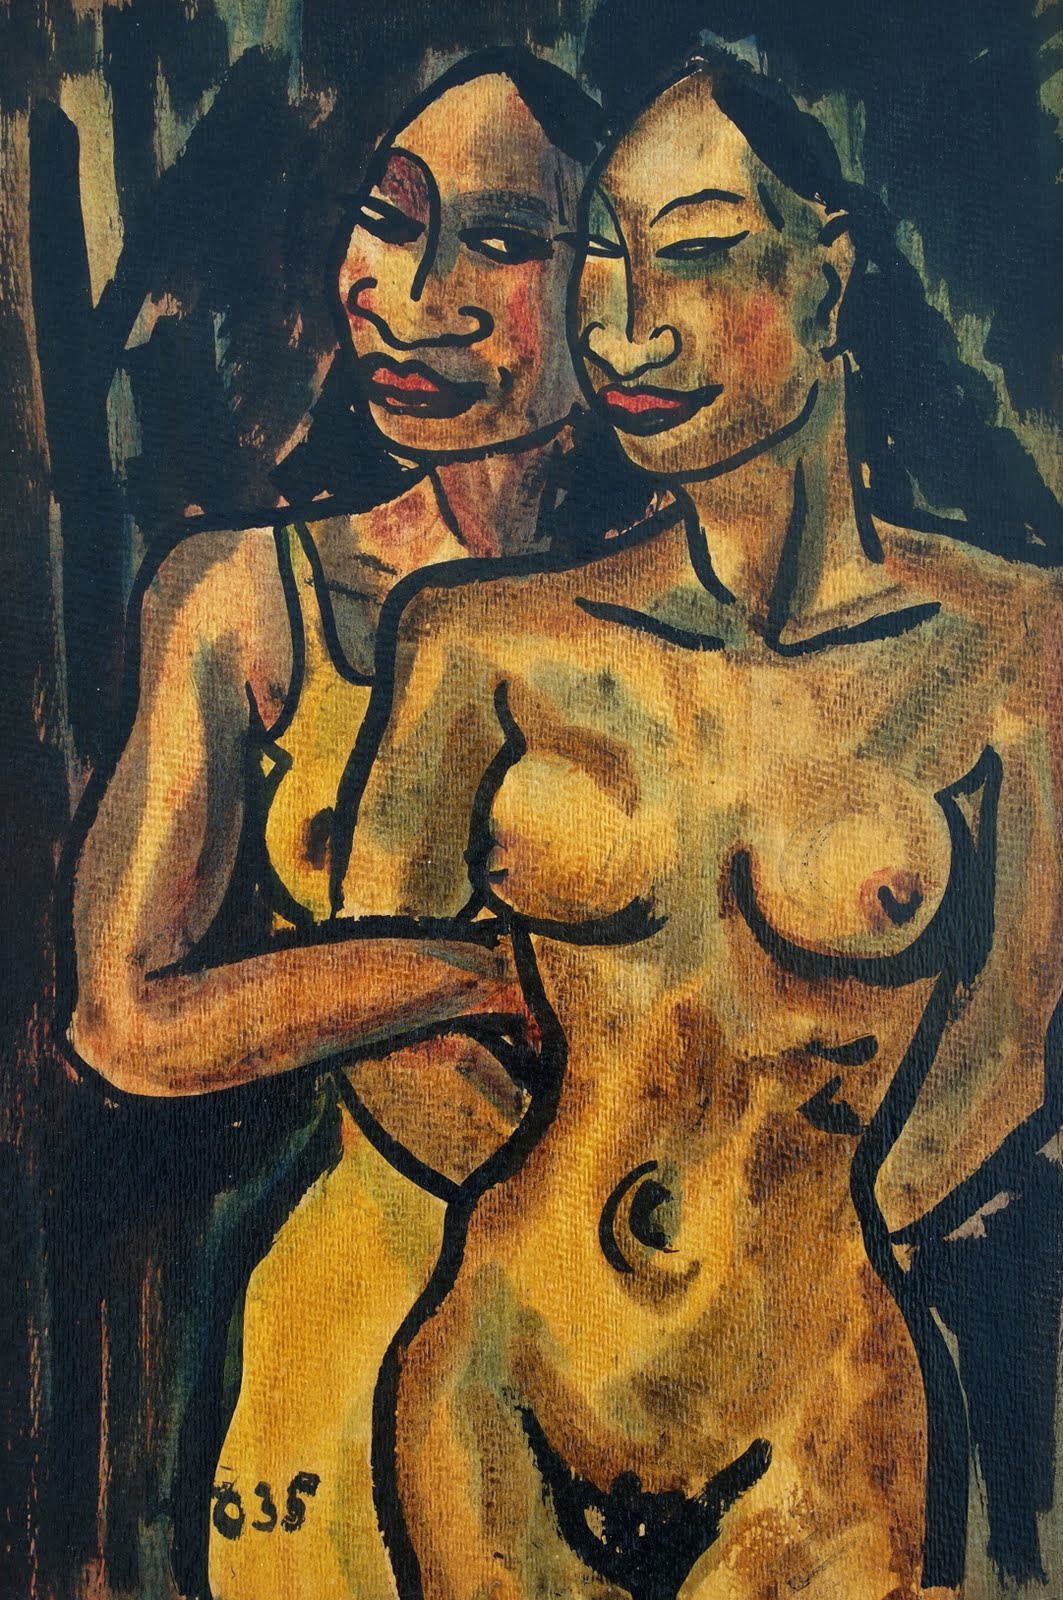 Nudes, oil on wood, 1935, 49 x 33 cm, family-owned